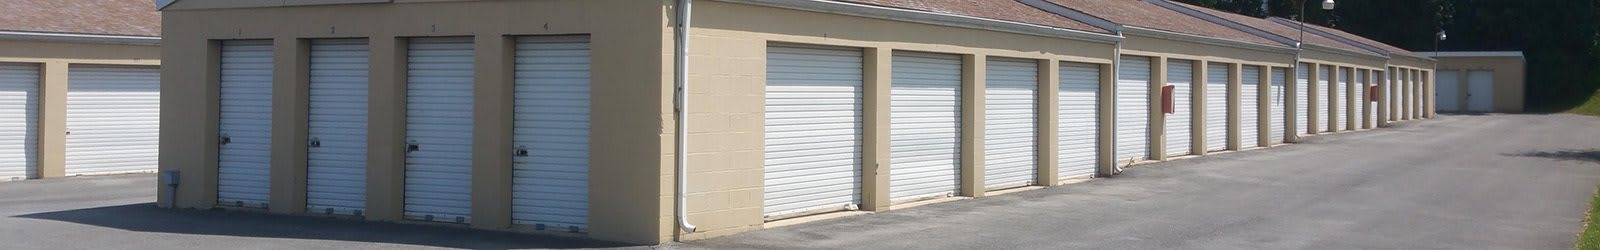 Contact us for your self storage needs in Hagerstown